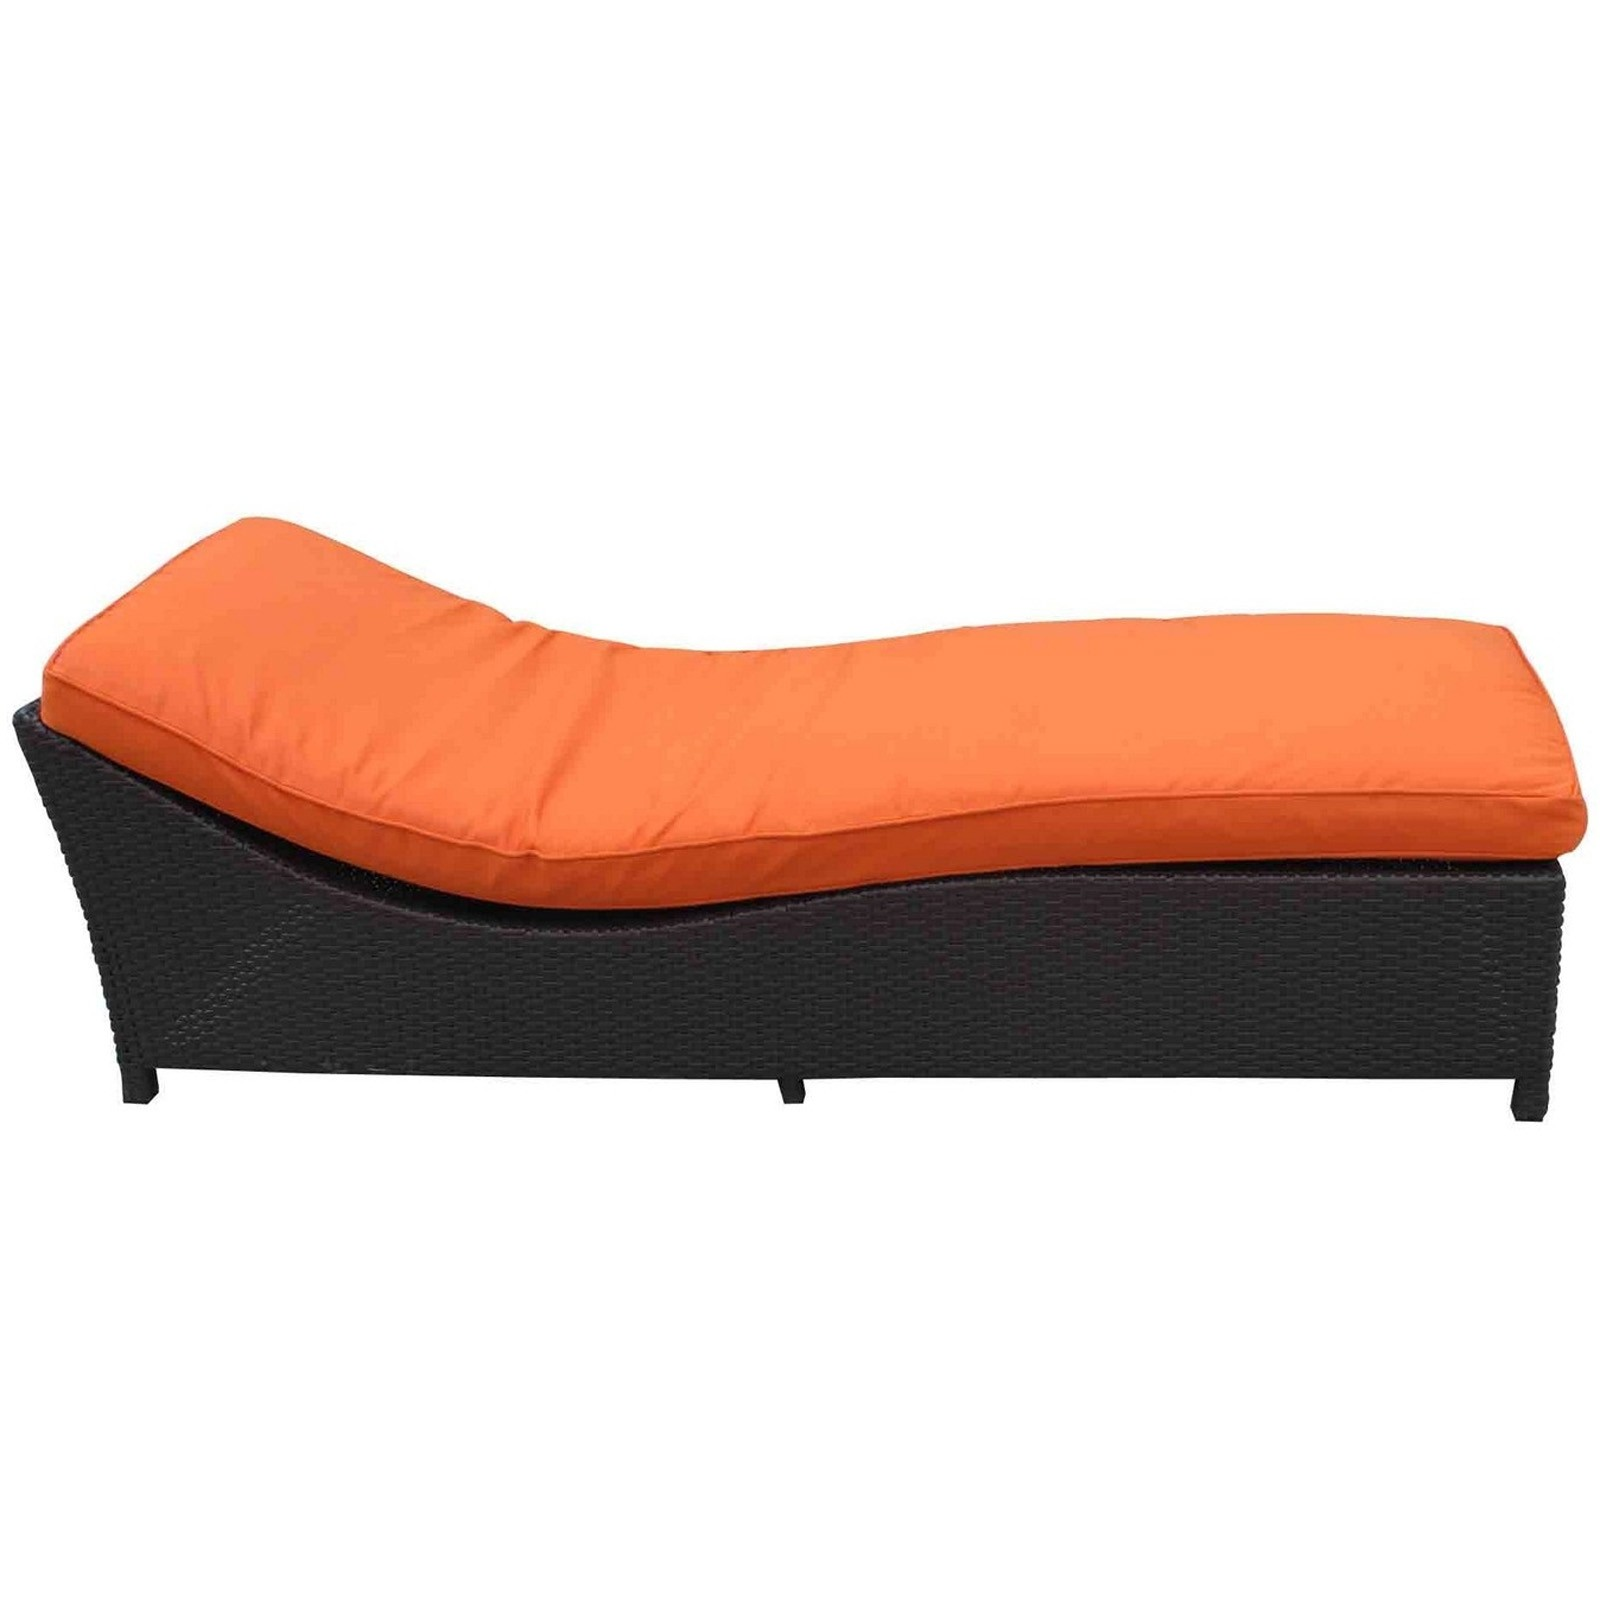 Image of: Orange Leather Chaise Lounge Chair